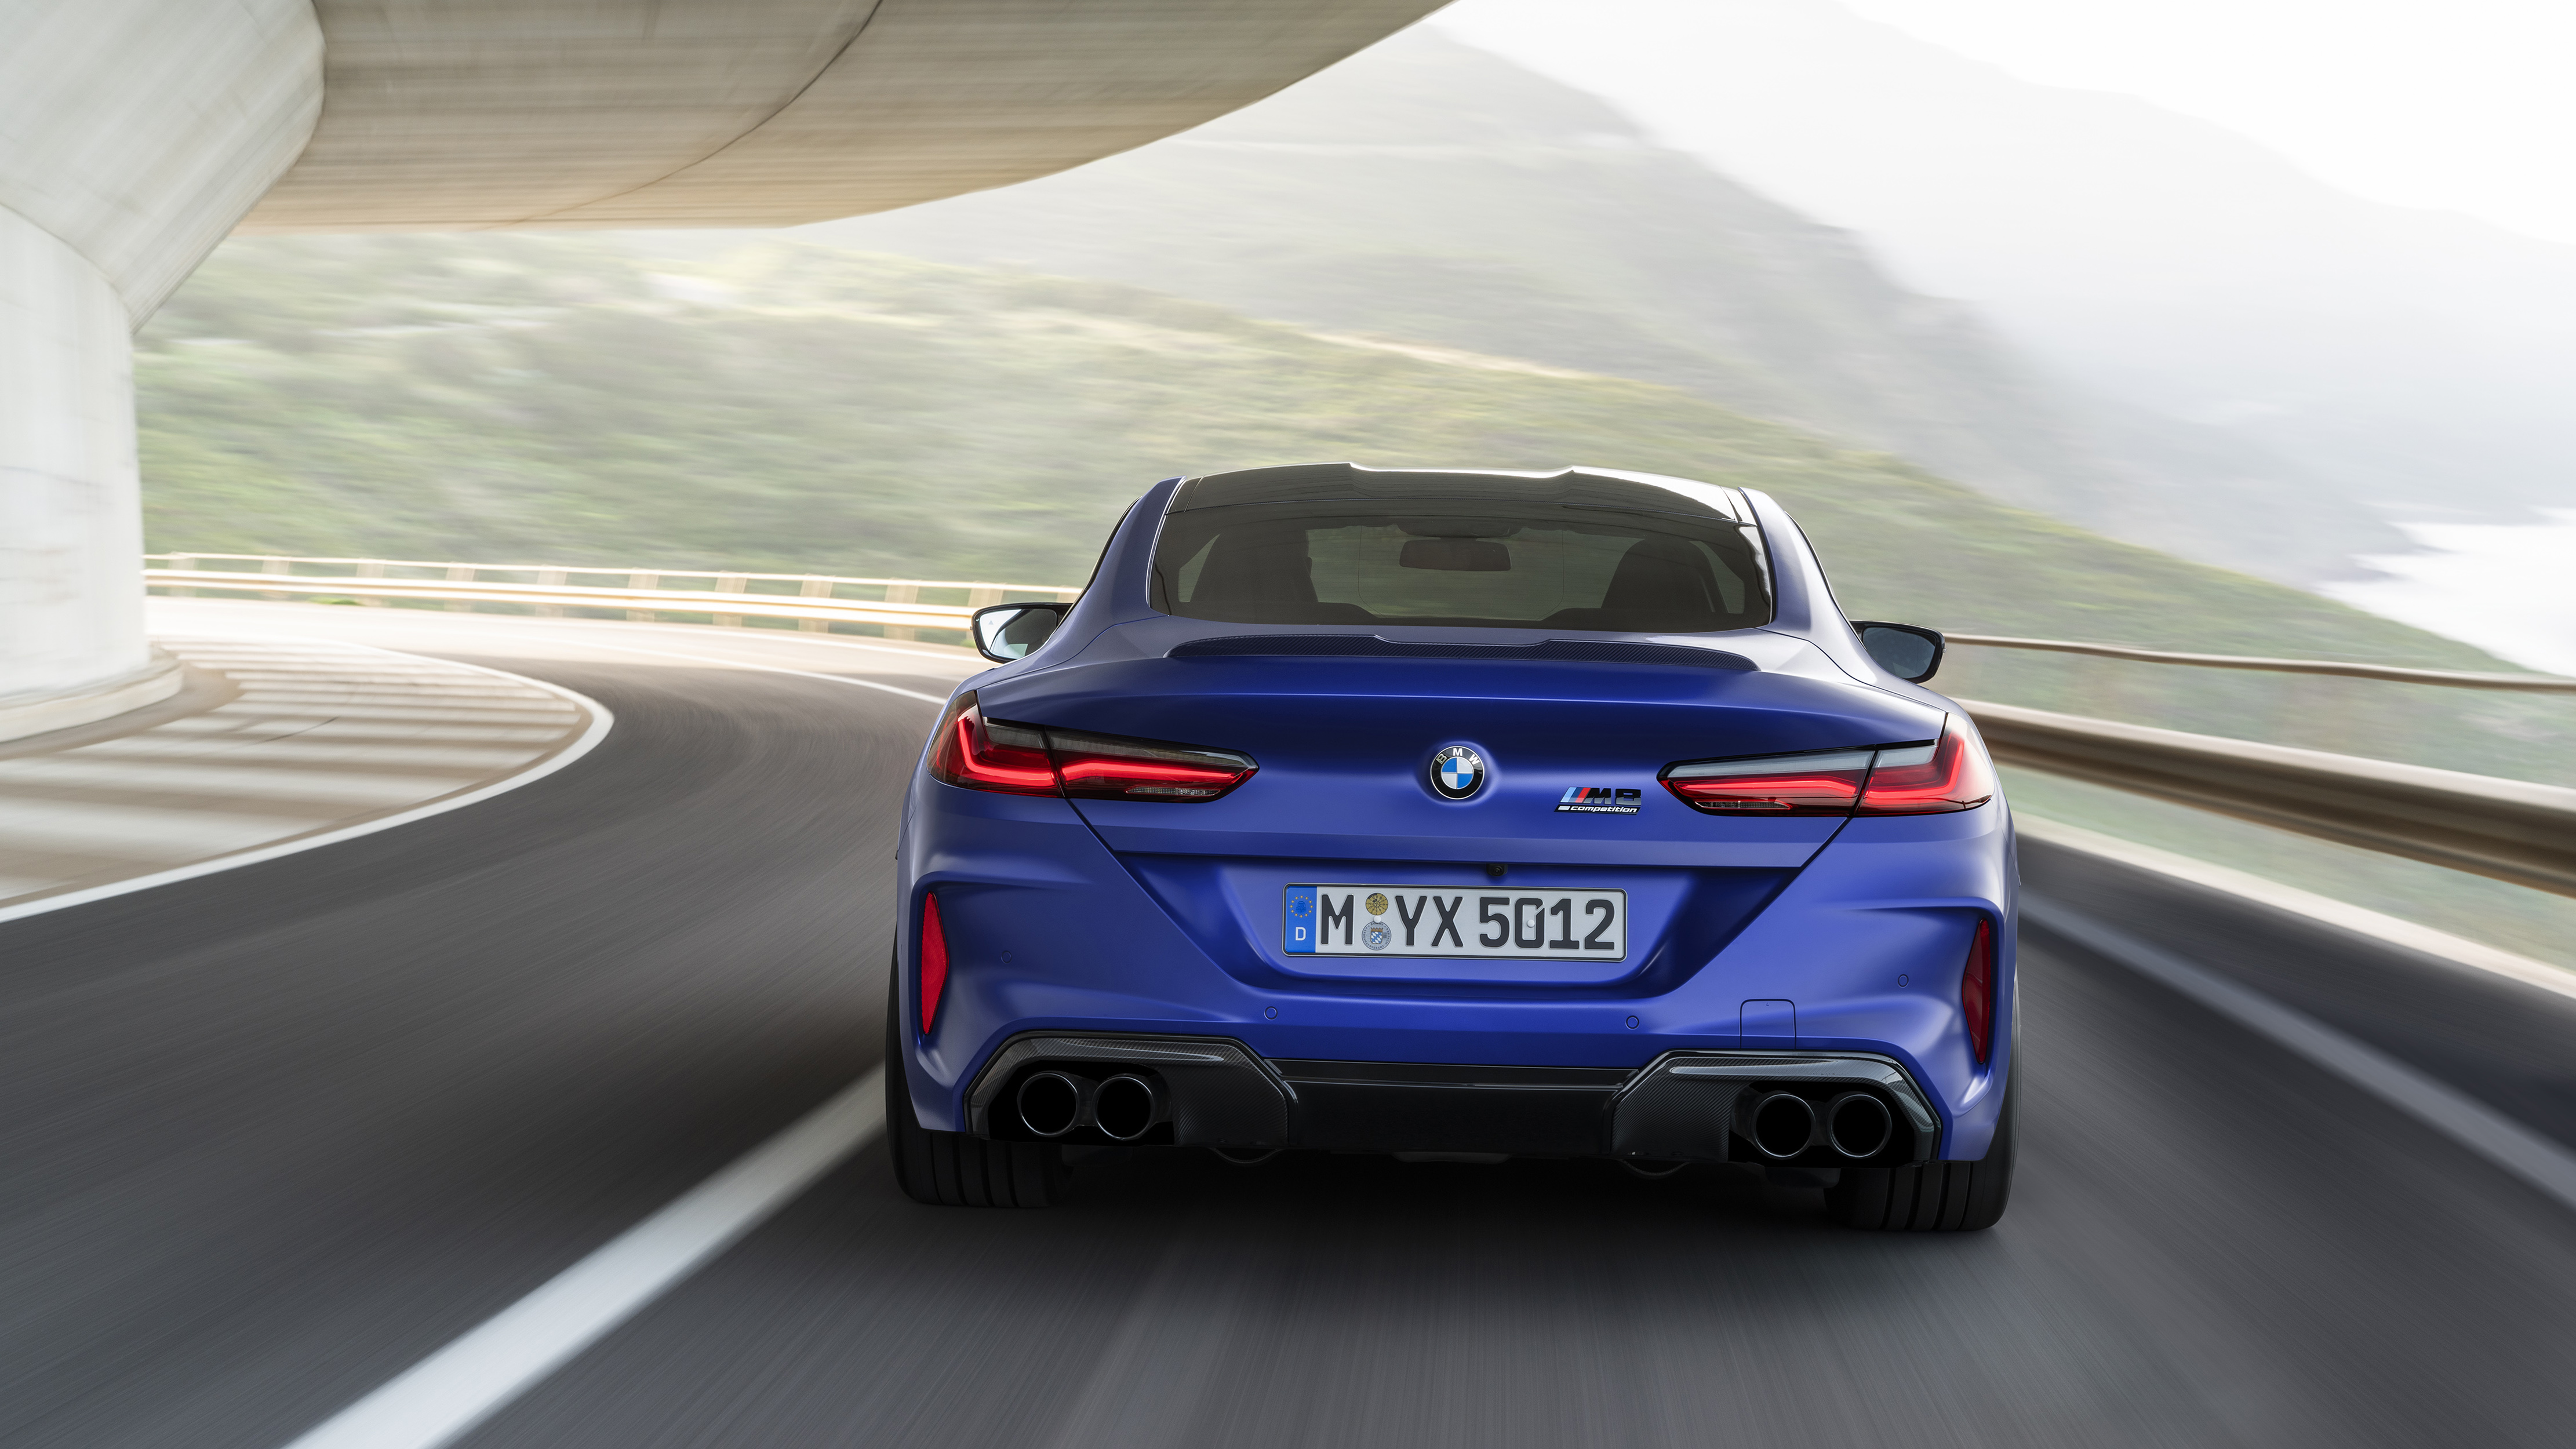 BMW M8 Competition Coupe 2019 4K 4 Wallpaper | HD Car ...